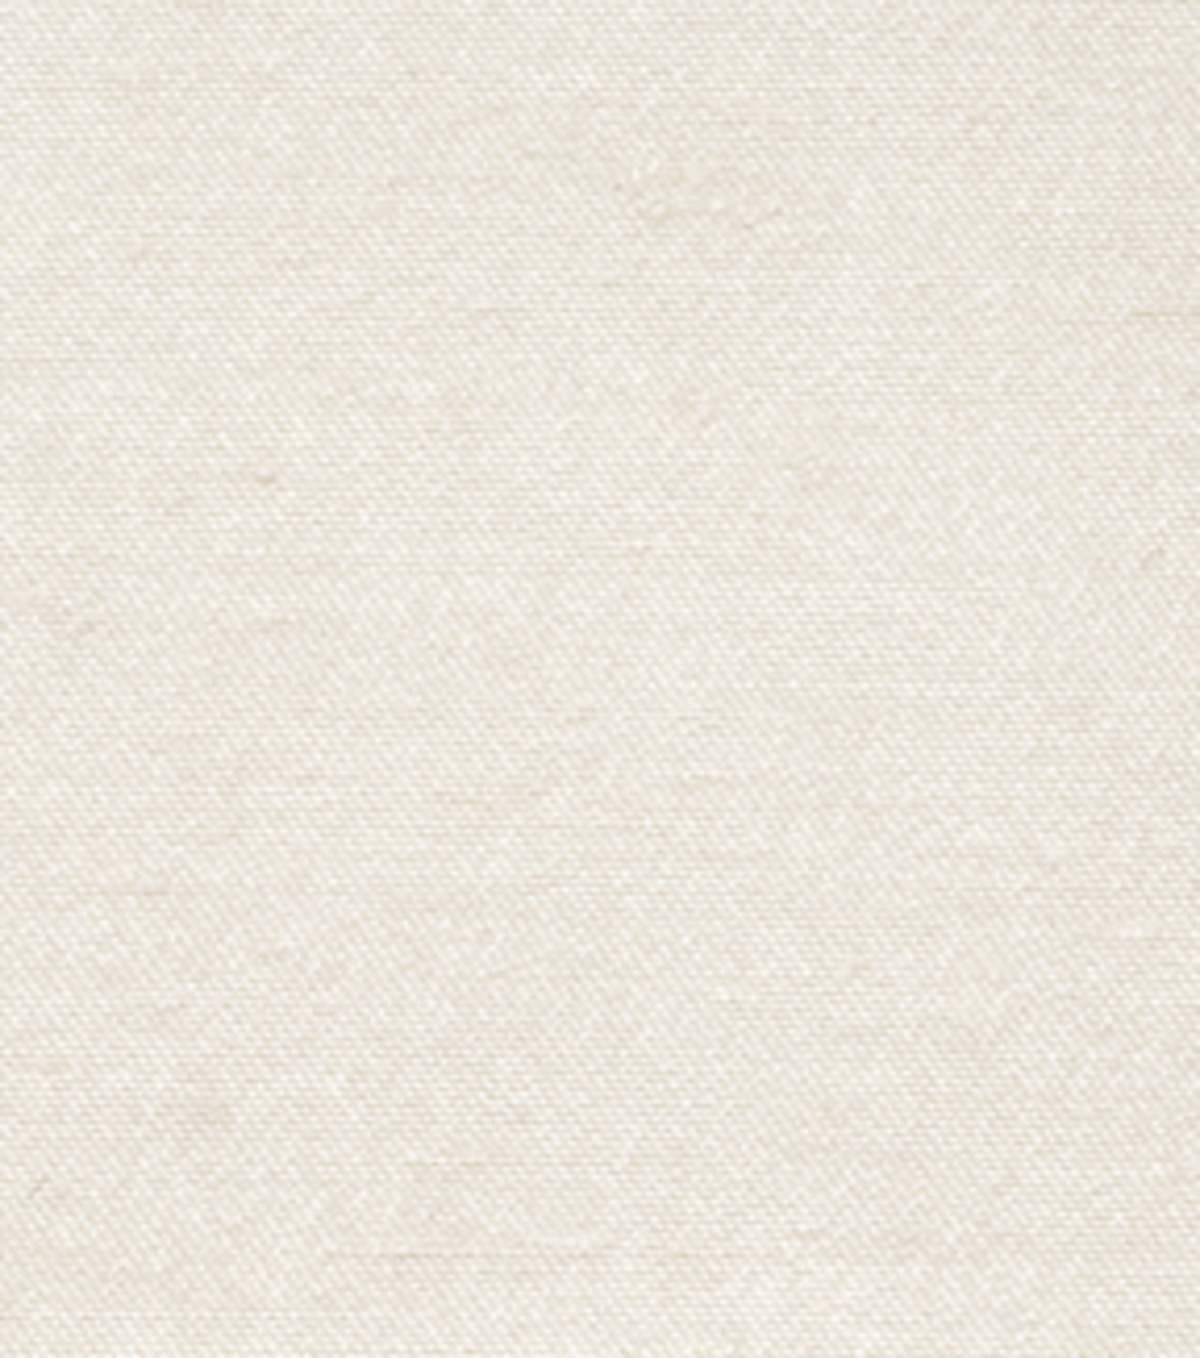 Home Decor 8\u0022x8\u0022 Fabric Swatch-Signature Series Antique Satin Pearl